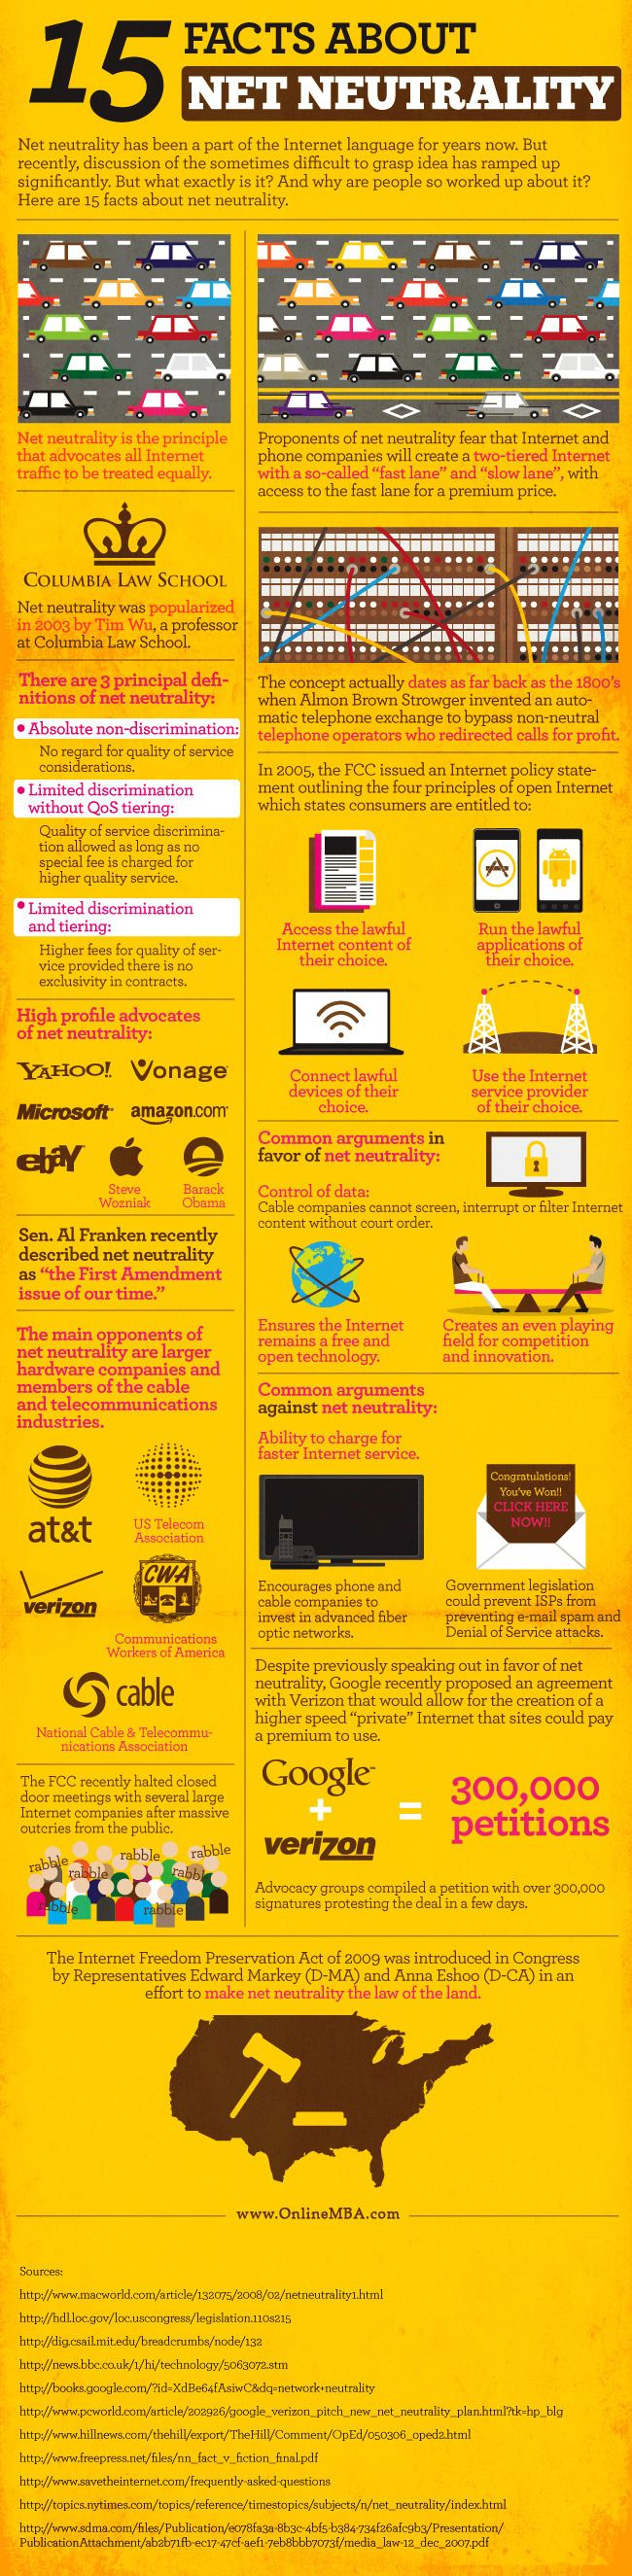 Facts About Net Neutrality Infographic Infographics - 15 amazing facts about the internet